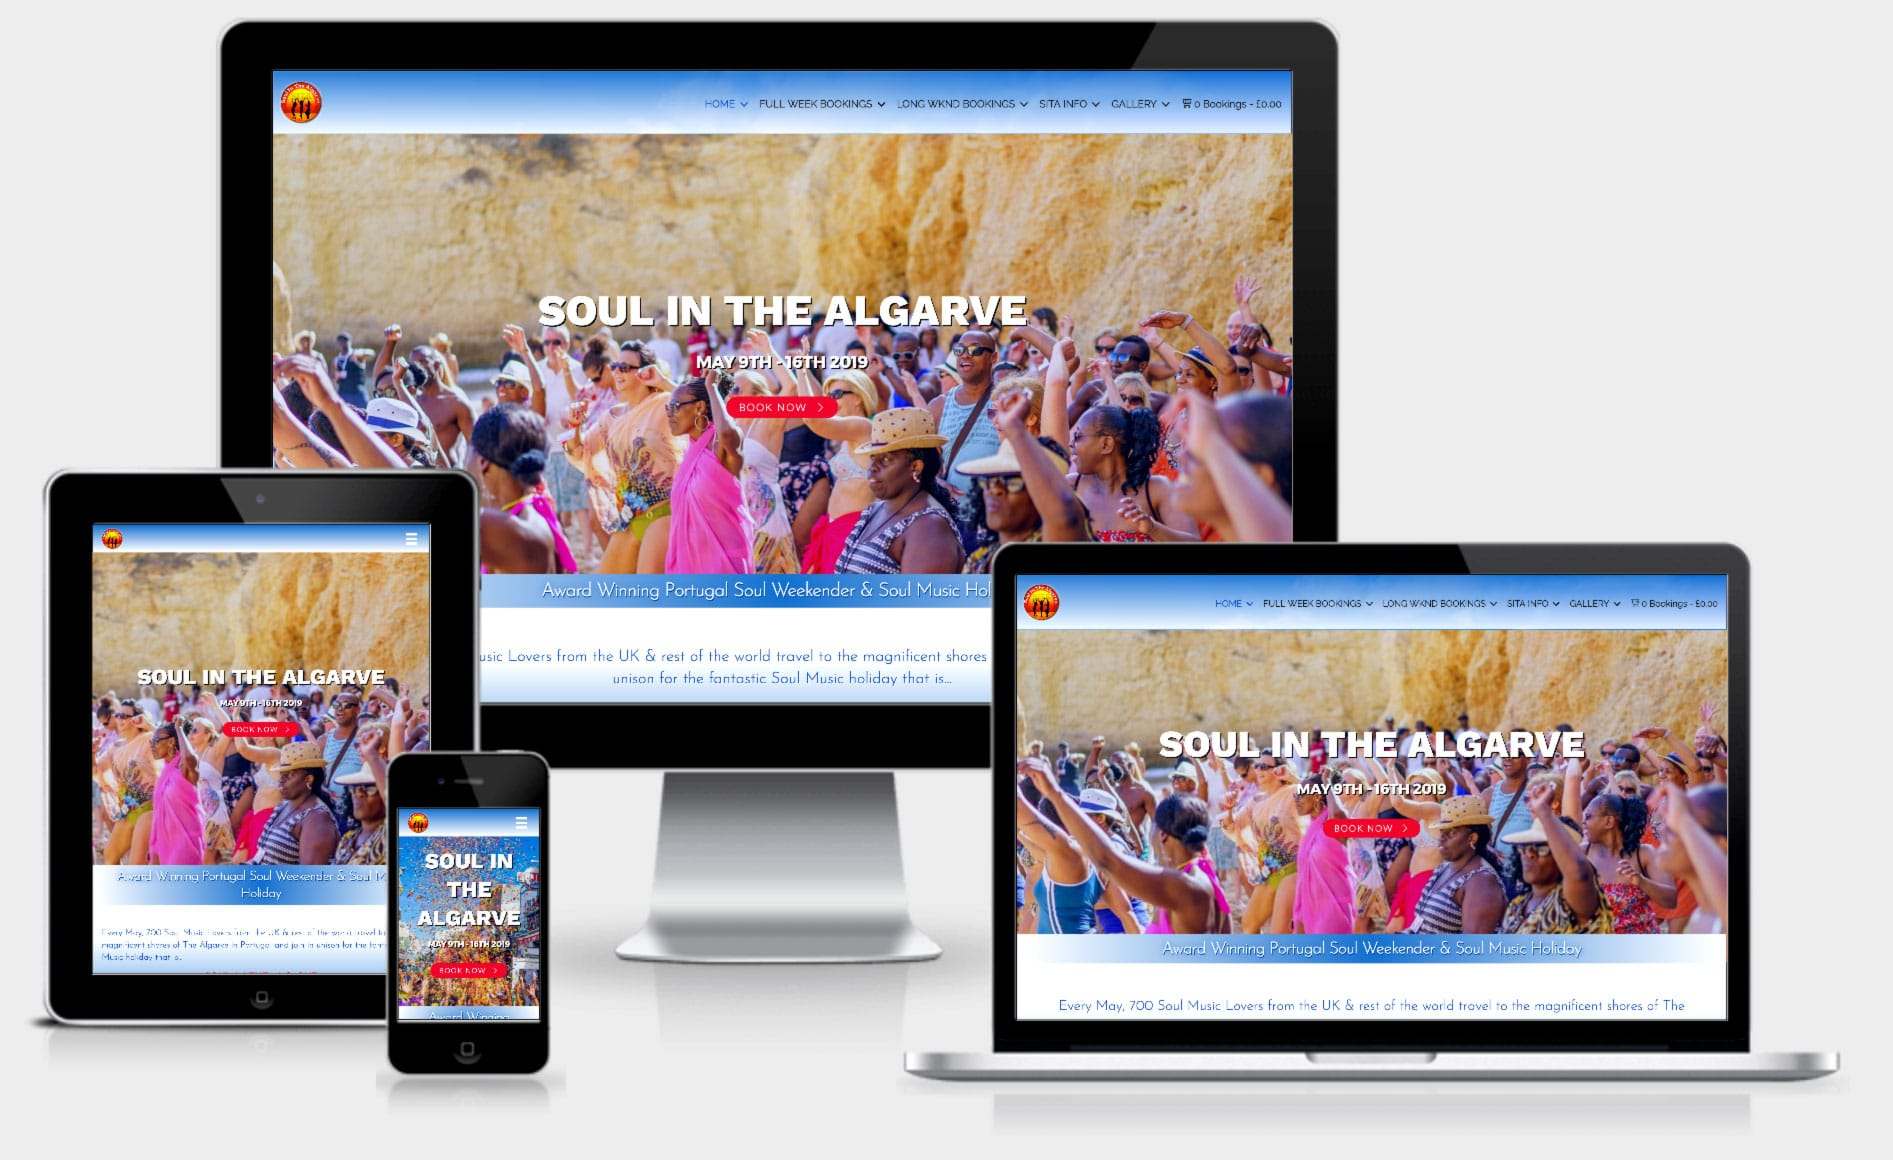 Soul-in-the-algrave-mpower-webdesign-template